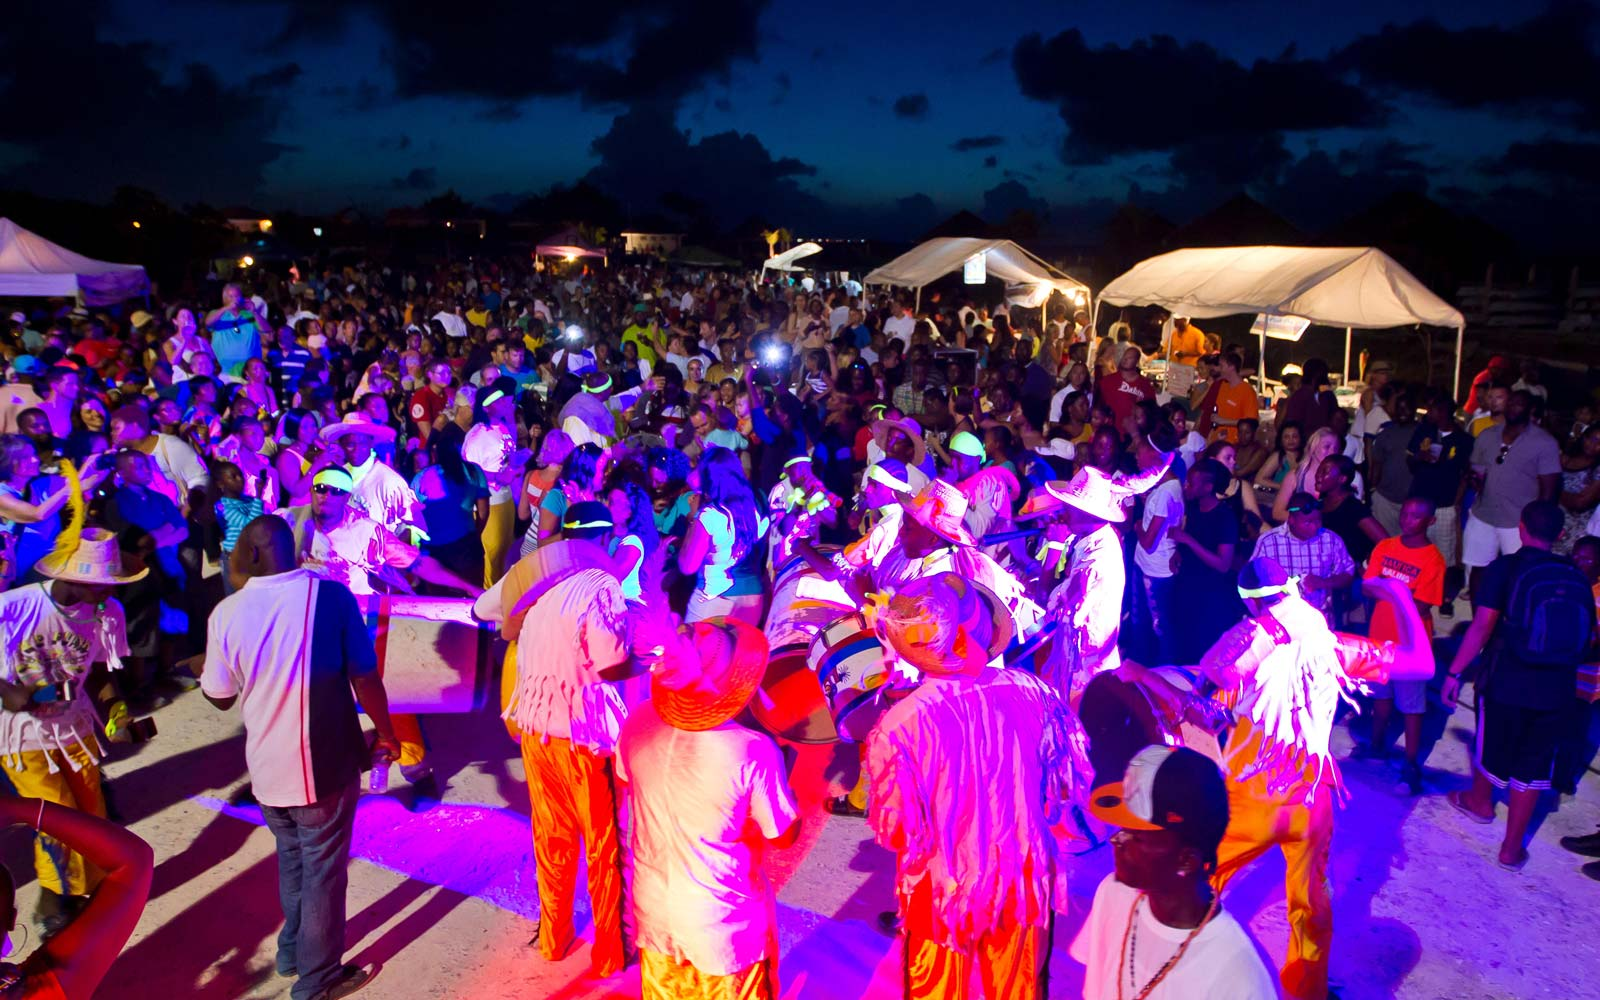 Junkanoo festival in the Turks & Caicos